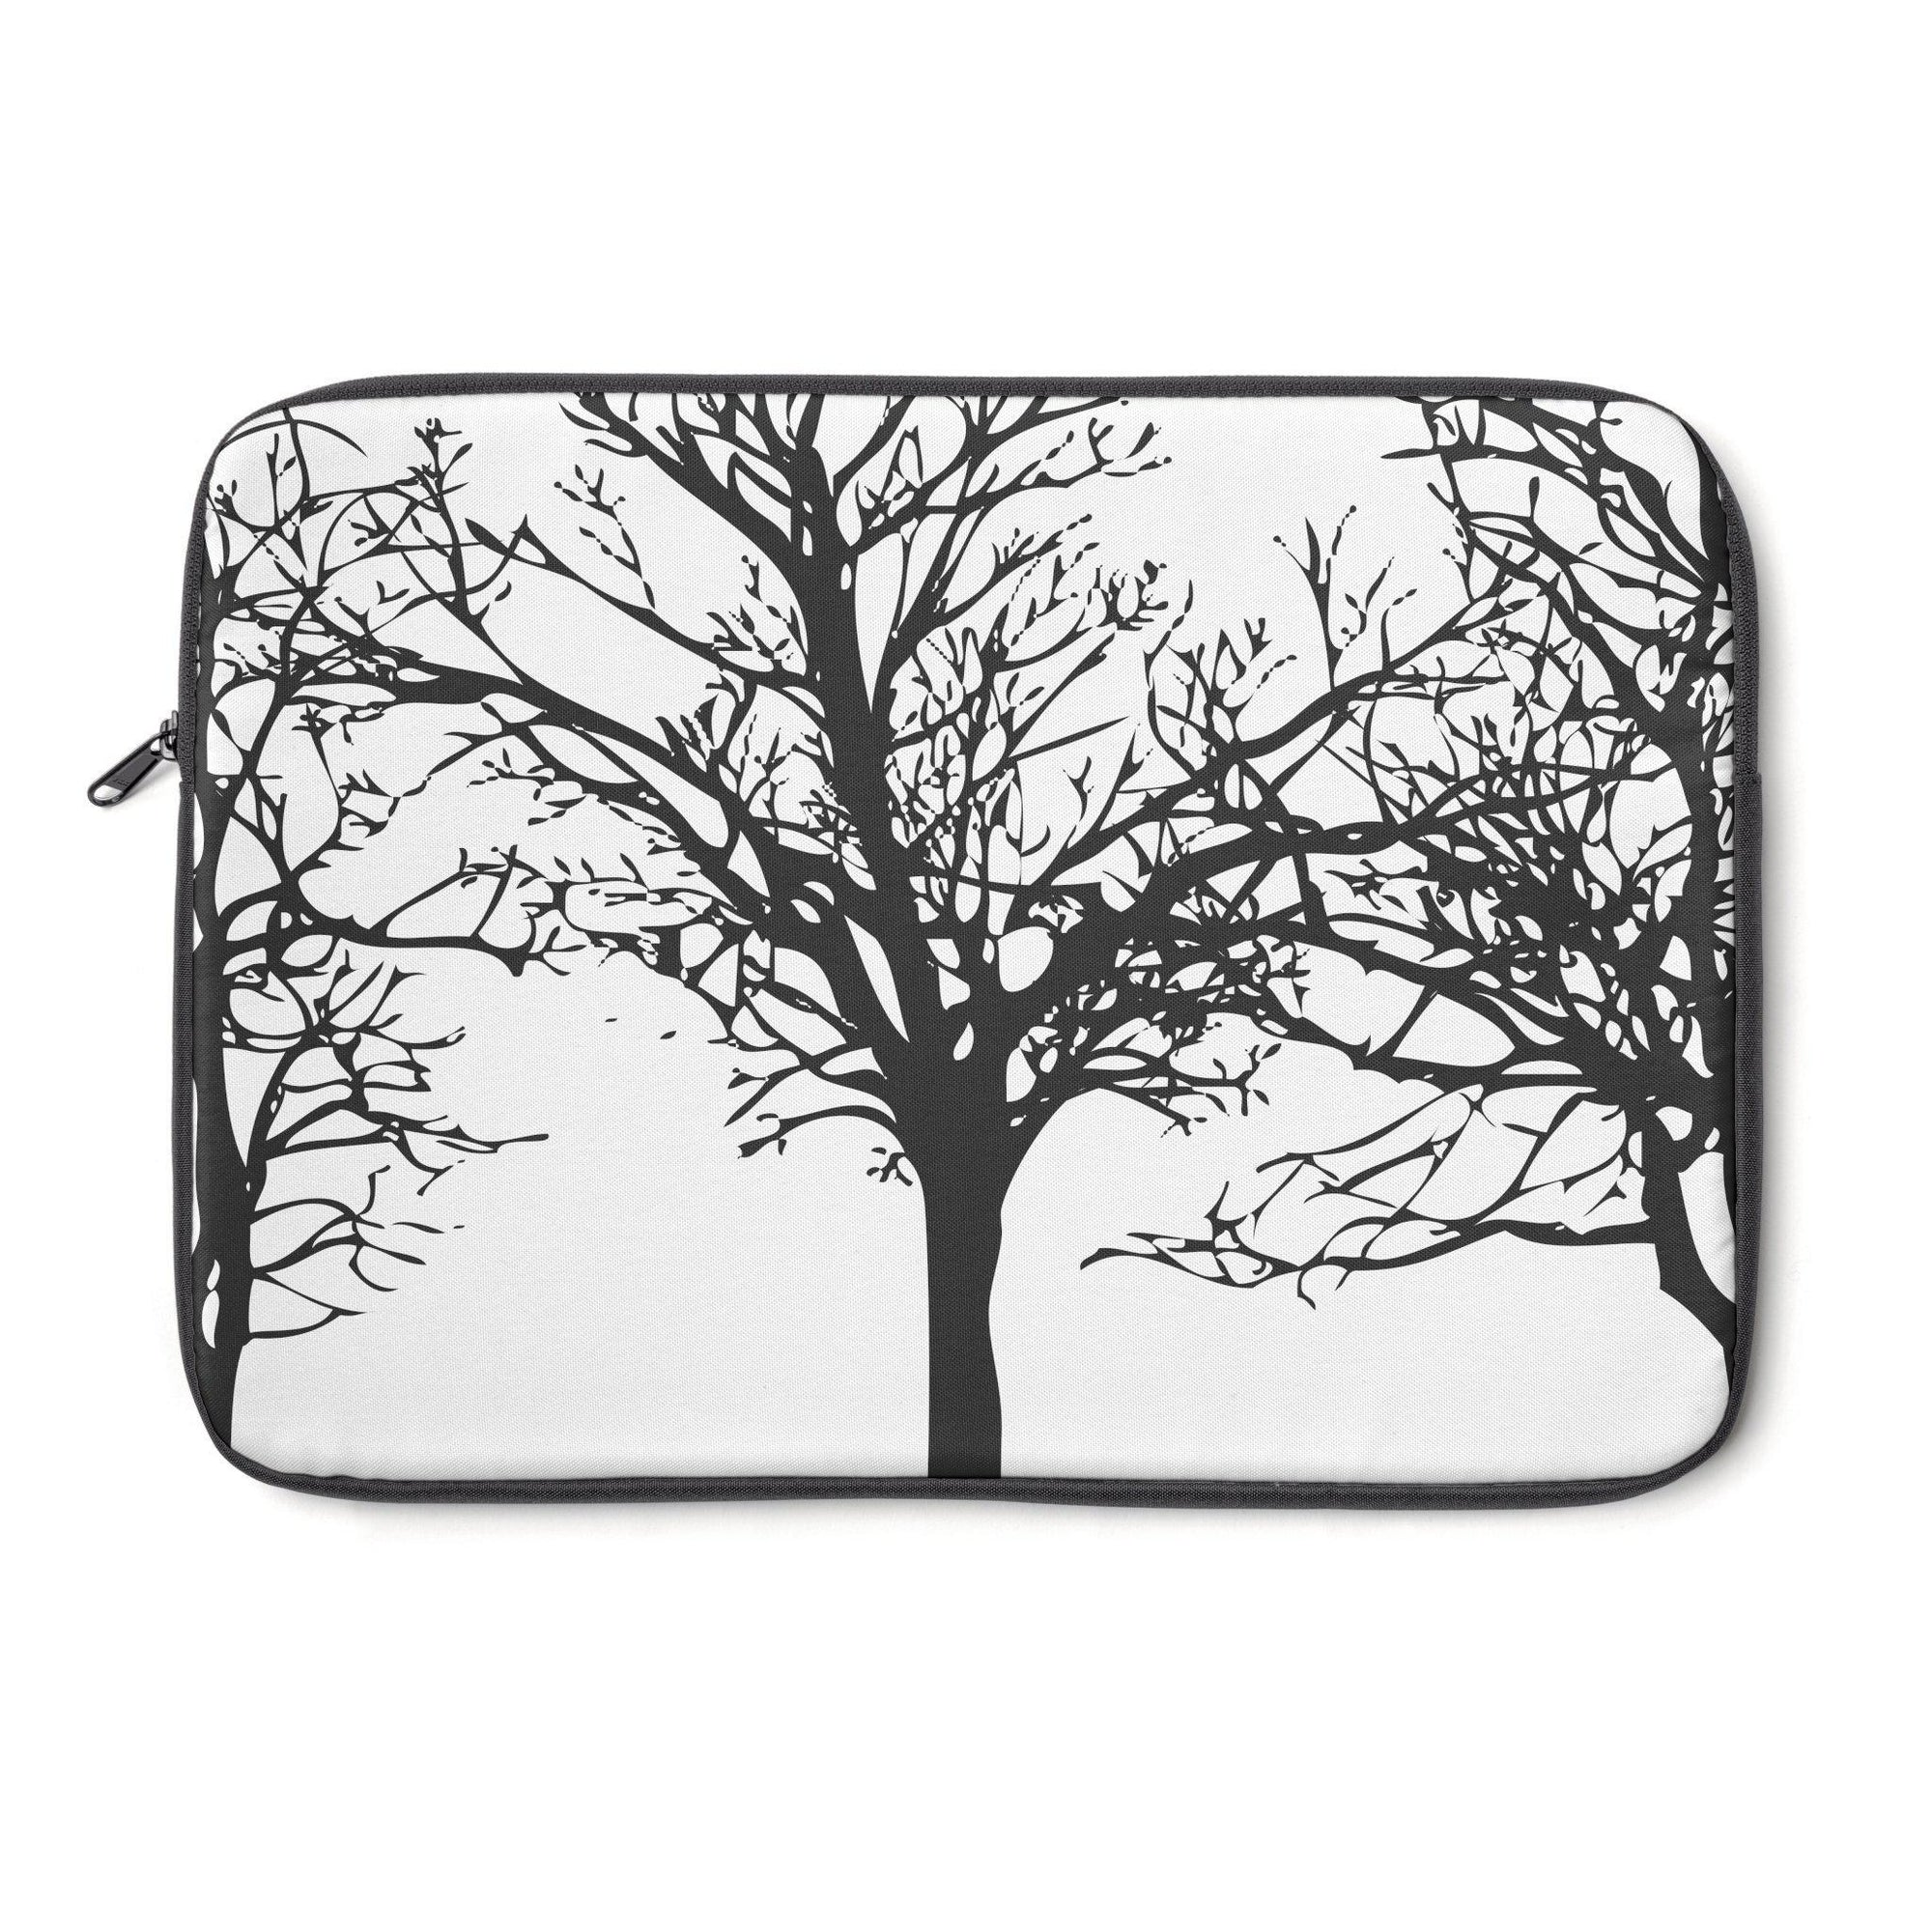 "Black Wintertrees Laptop Sleeve-Tech - Accessories - Laptop Sleeves-Maison d'Elite-13""-Très Elite"